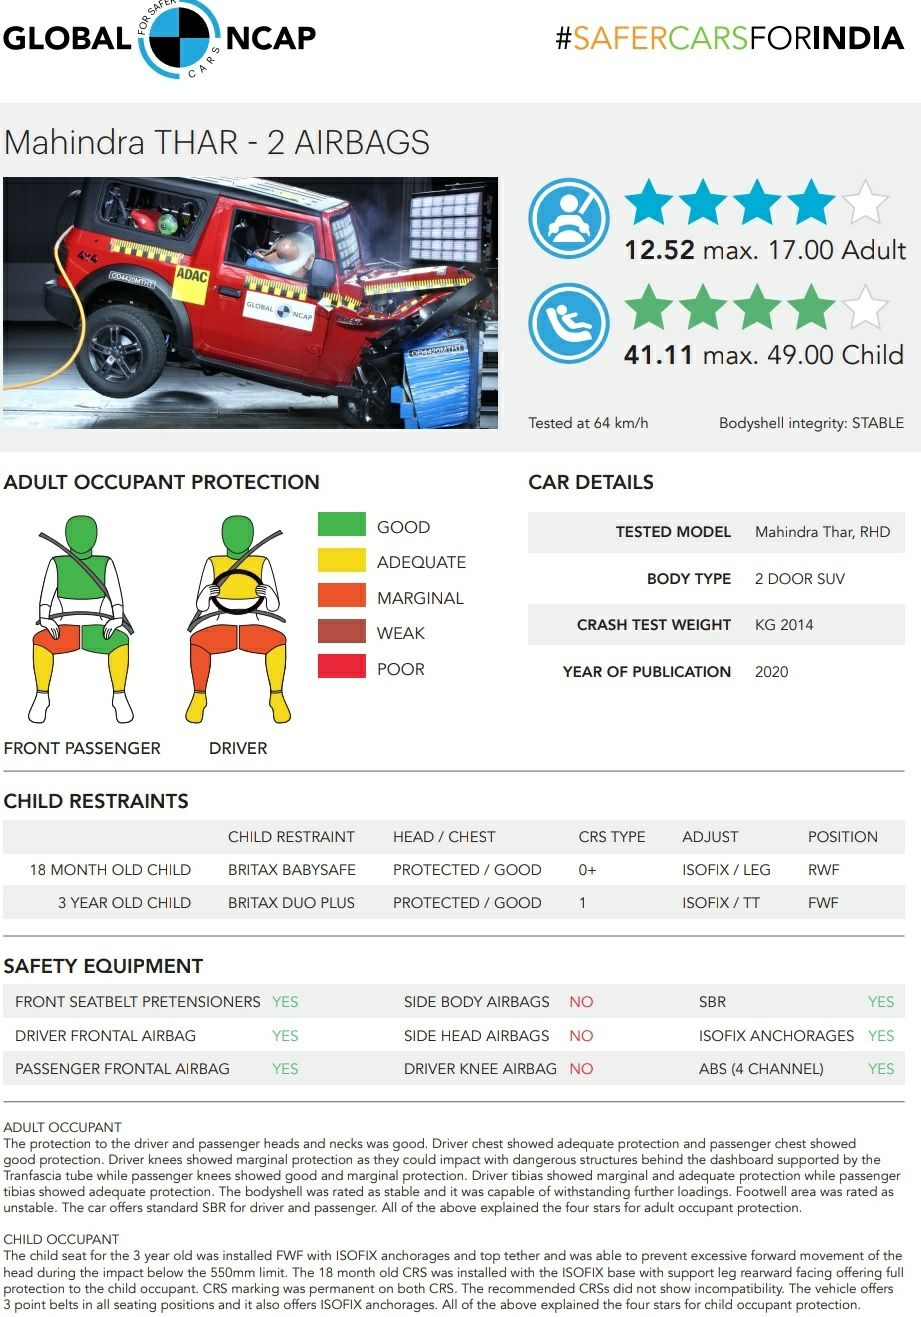 Mahindra Thar Global NCAP Rating